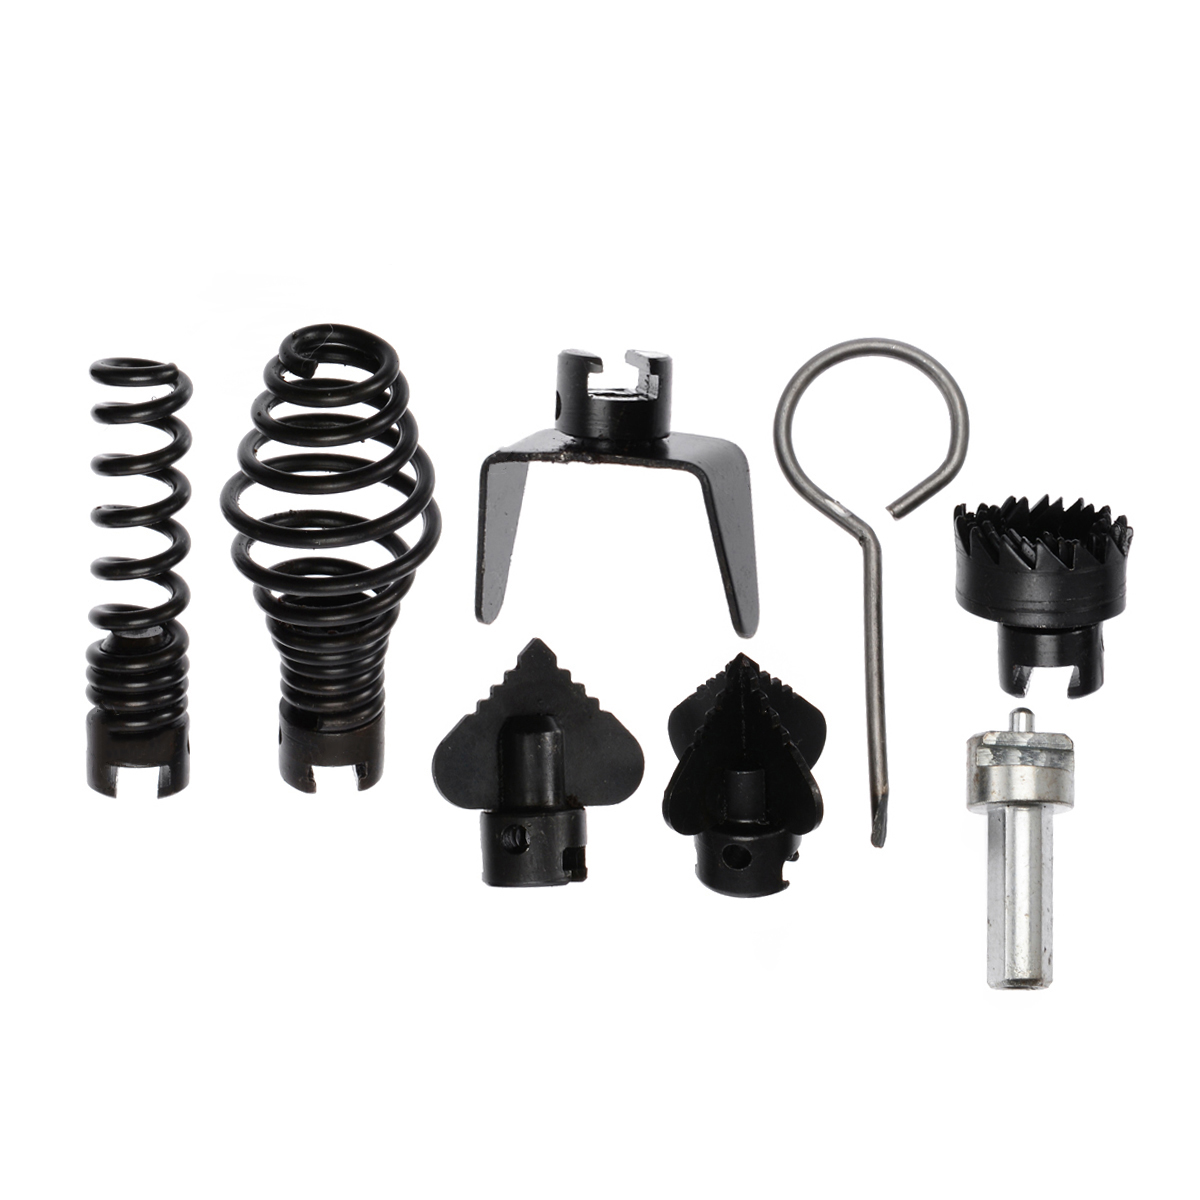 7Pcs 16mm Drain Cleaner Cutter Set Manganese Steel Drain Cleaner Machine Combination Cutter Head For Tool Parts High Quality